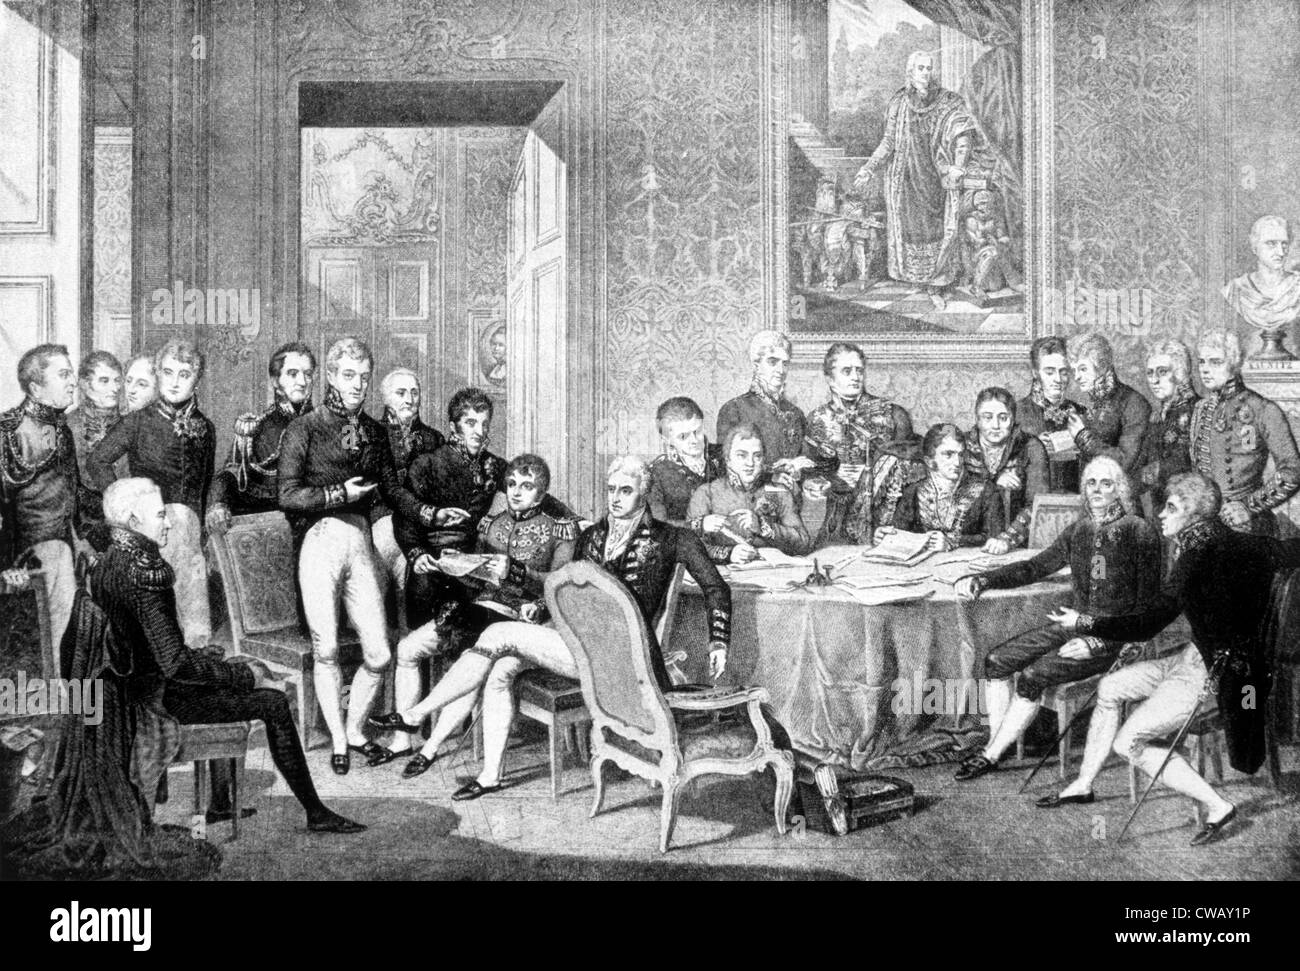 the congress of vienna and the The congress of vienna was held from september of 1814 to june of 1815 after  the downfall of napoleon bonaparte, this international conference was called.